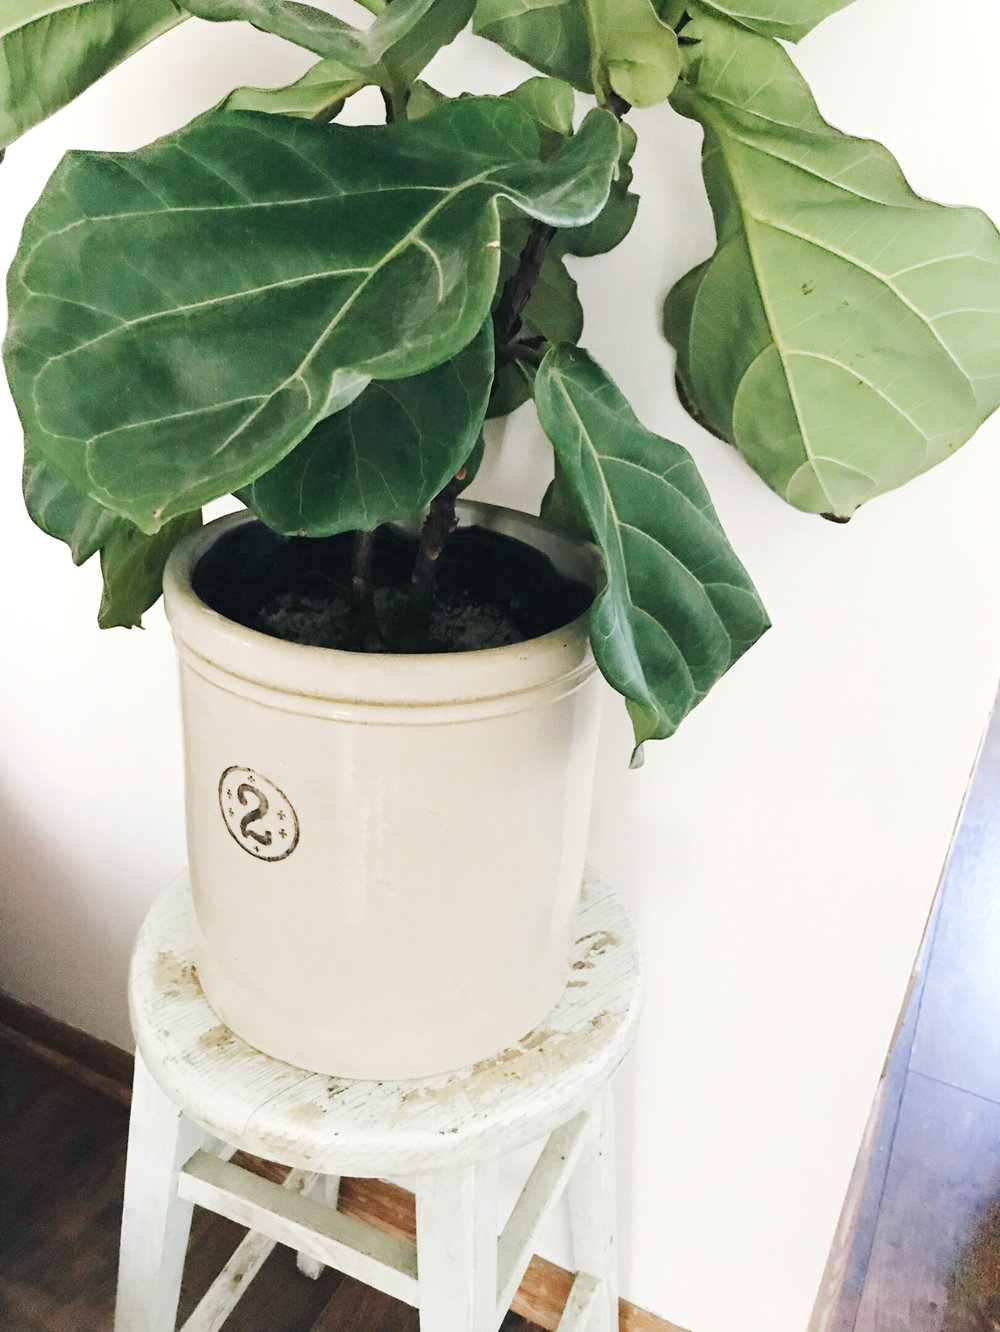 Give Your Houseplants a Makeover from hprallandco.com | H.Prall & Co.